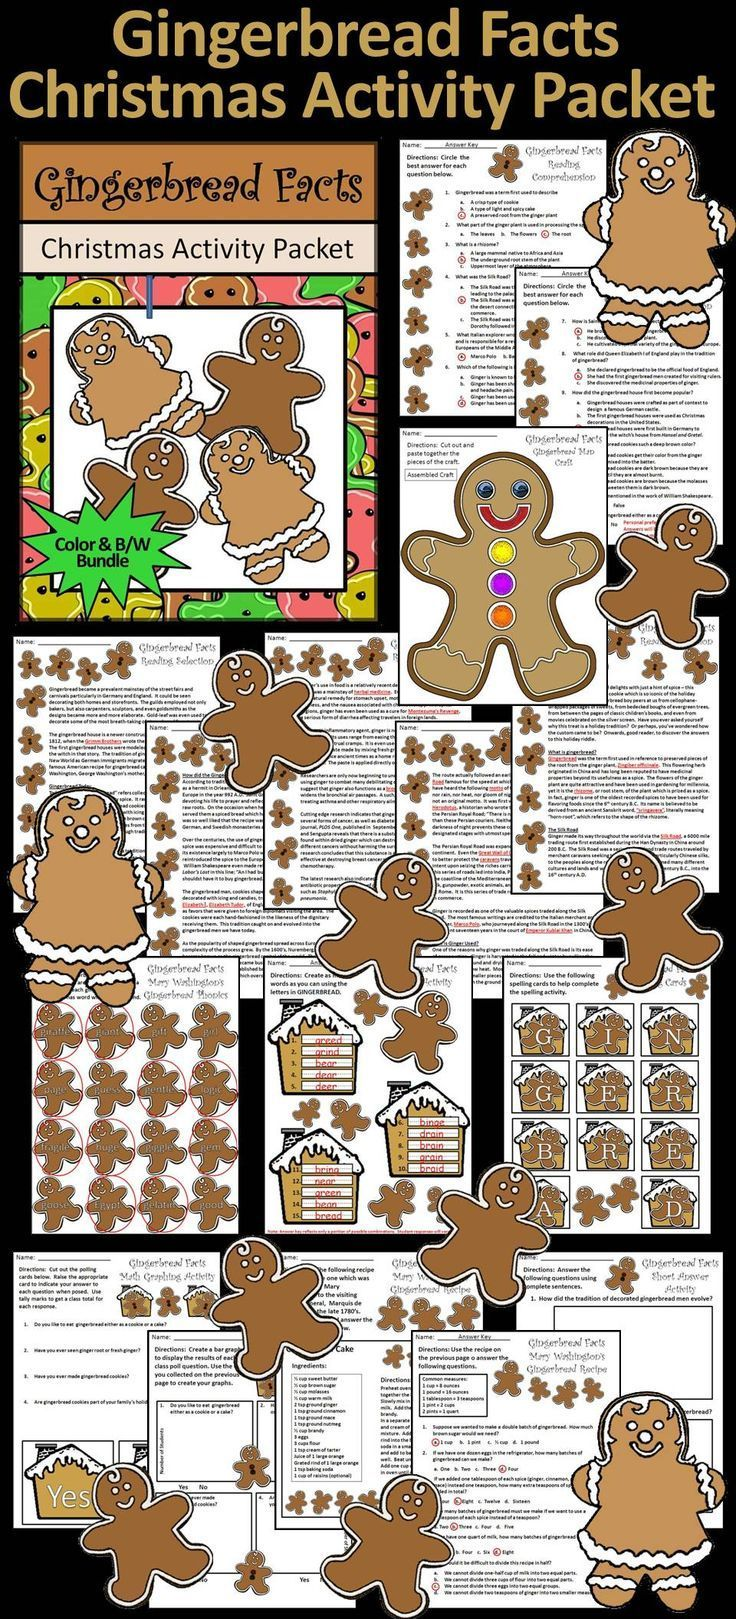 history of the gingerbread essay How to make perfect gingerbread  includes a short essay on the biscuit's history, which begins with this intriguing detail: gingerbread of the past, the gingerbread of the fairground, the.